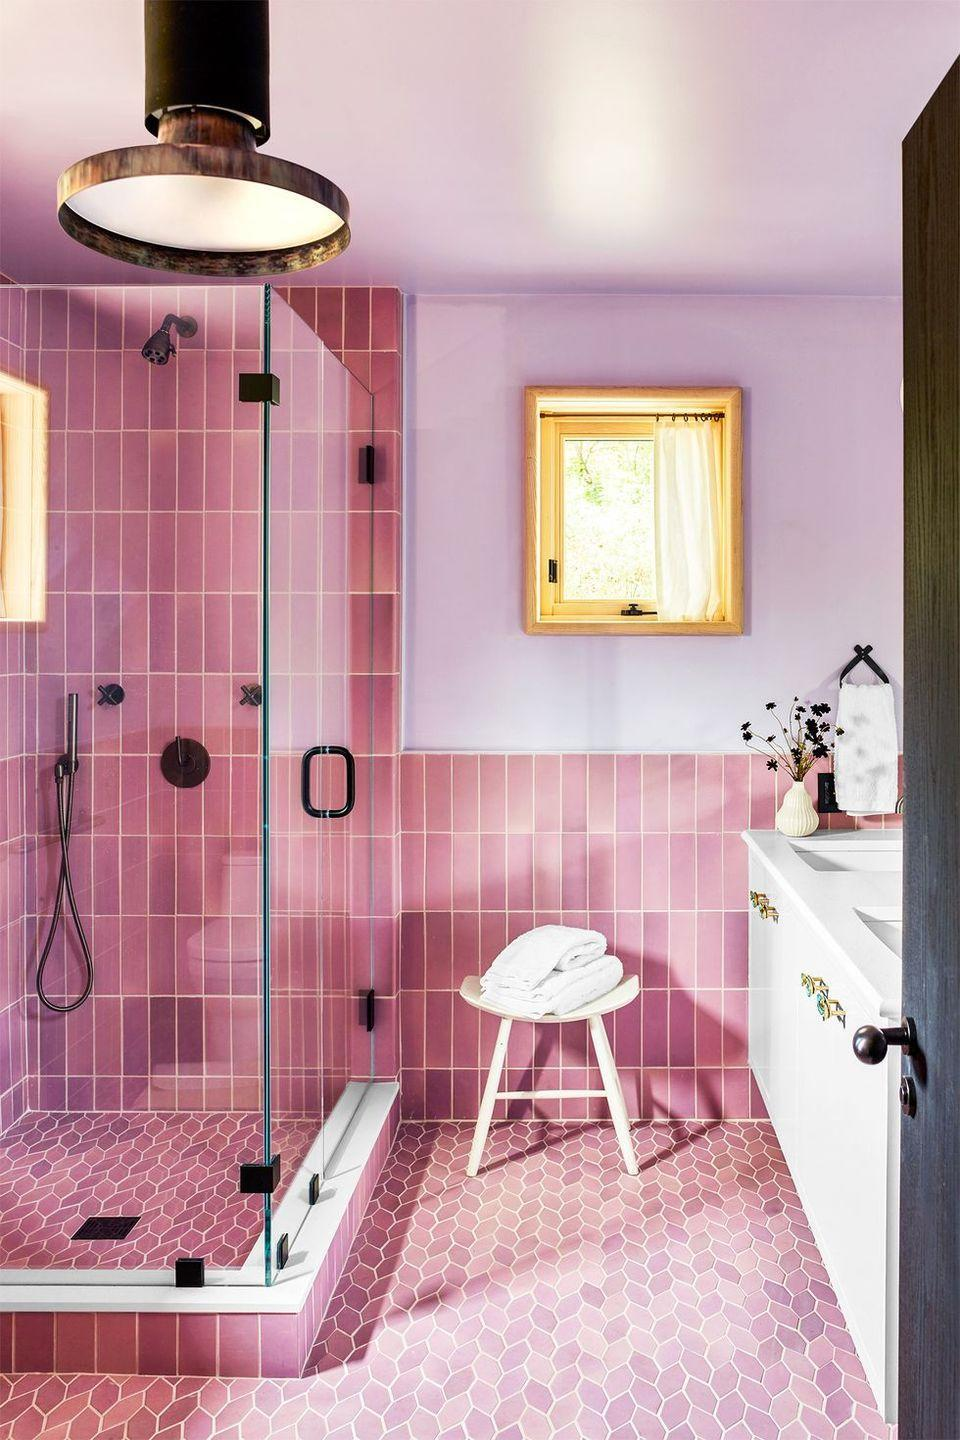 """<p>This bathroom by designer <a href=""""https://coreydamenjenkins.com/"""" rel=""""nofollow noopener"""" target=""""_blank"""" data-ylk=""""slk:Corey Damen Jenkins"""" class=""""link rapid-noclick-resp"""">Corey Damen Jenkins</a> is a lesson in how to have fun with tile and color. The pink subway tiles on the wall and the diamond, almost leaf-like motif on the floors of this bathroom bring in a surge of energy while the lavender paint sets an instant calm . The brass industrial-style fixtures and lighting add just enough contrast and intrigue to the otherwise sweet and romantic space. </p>"""